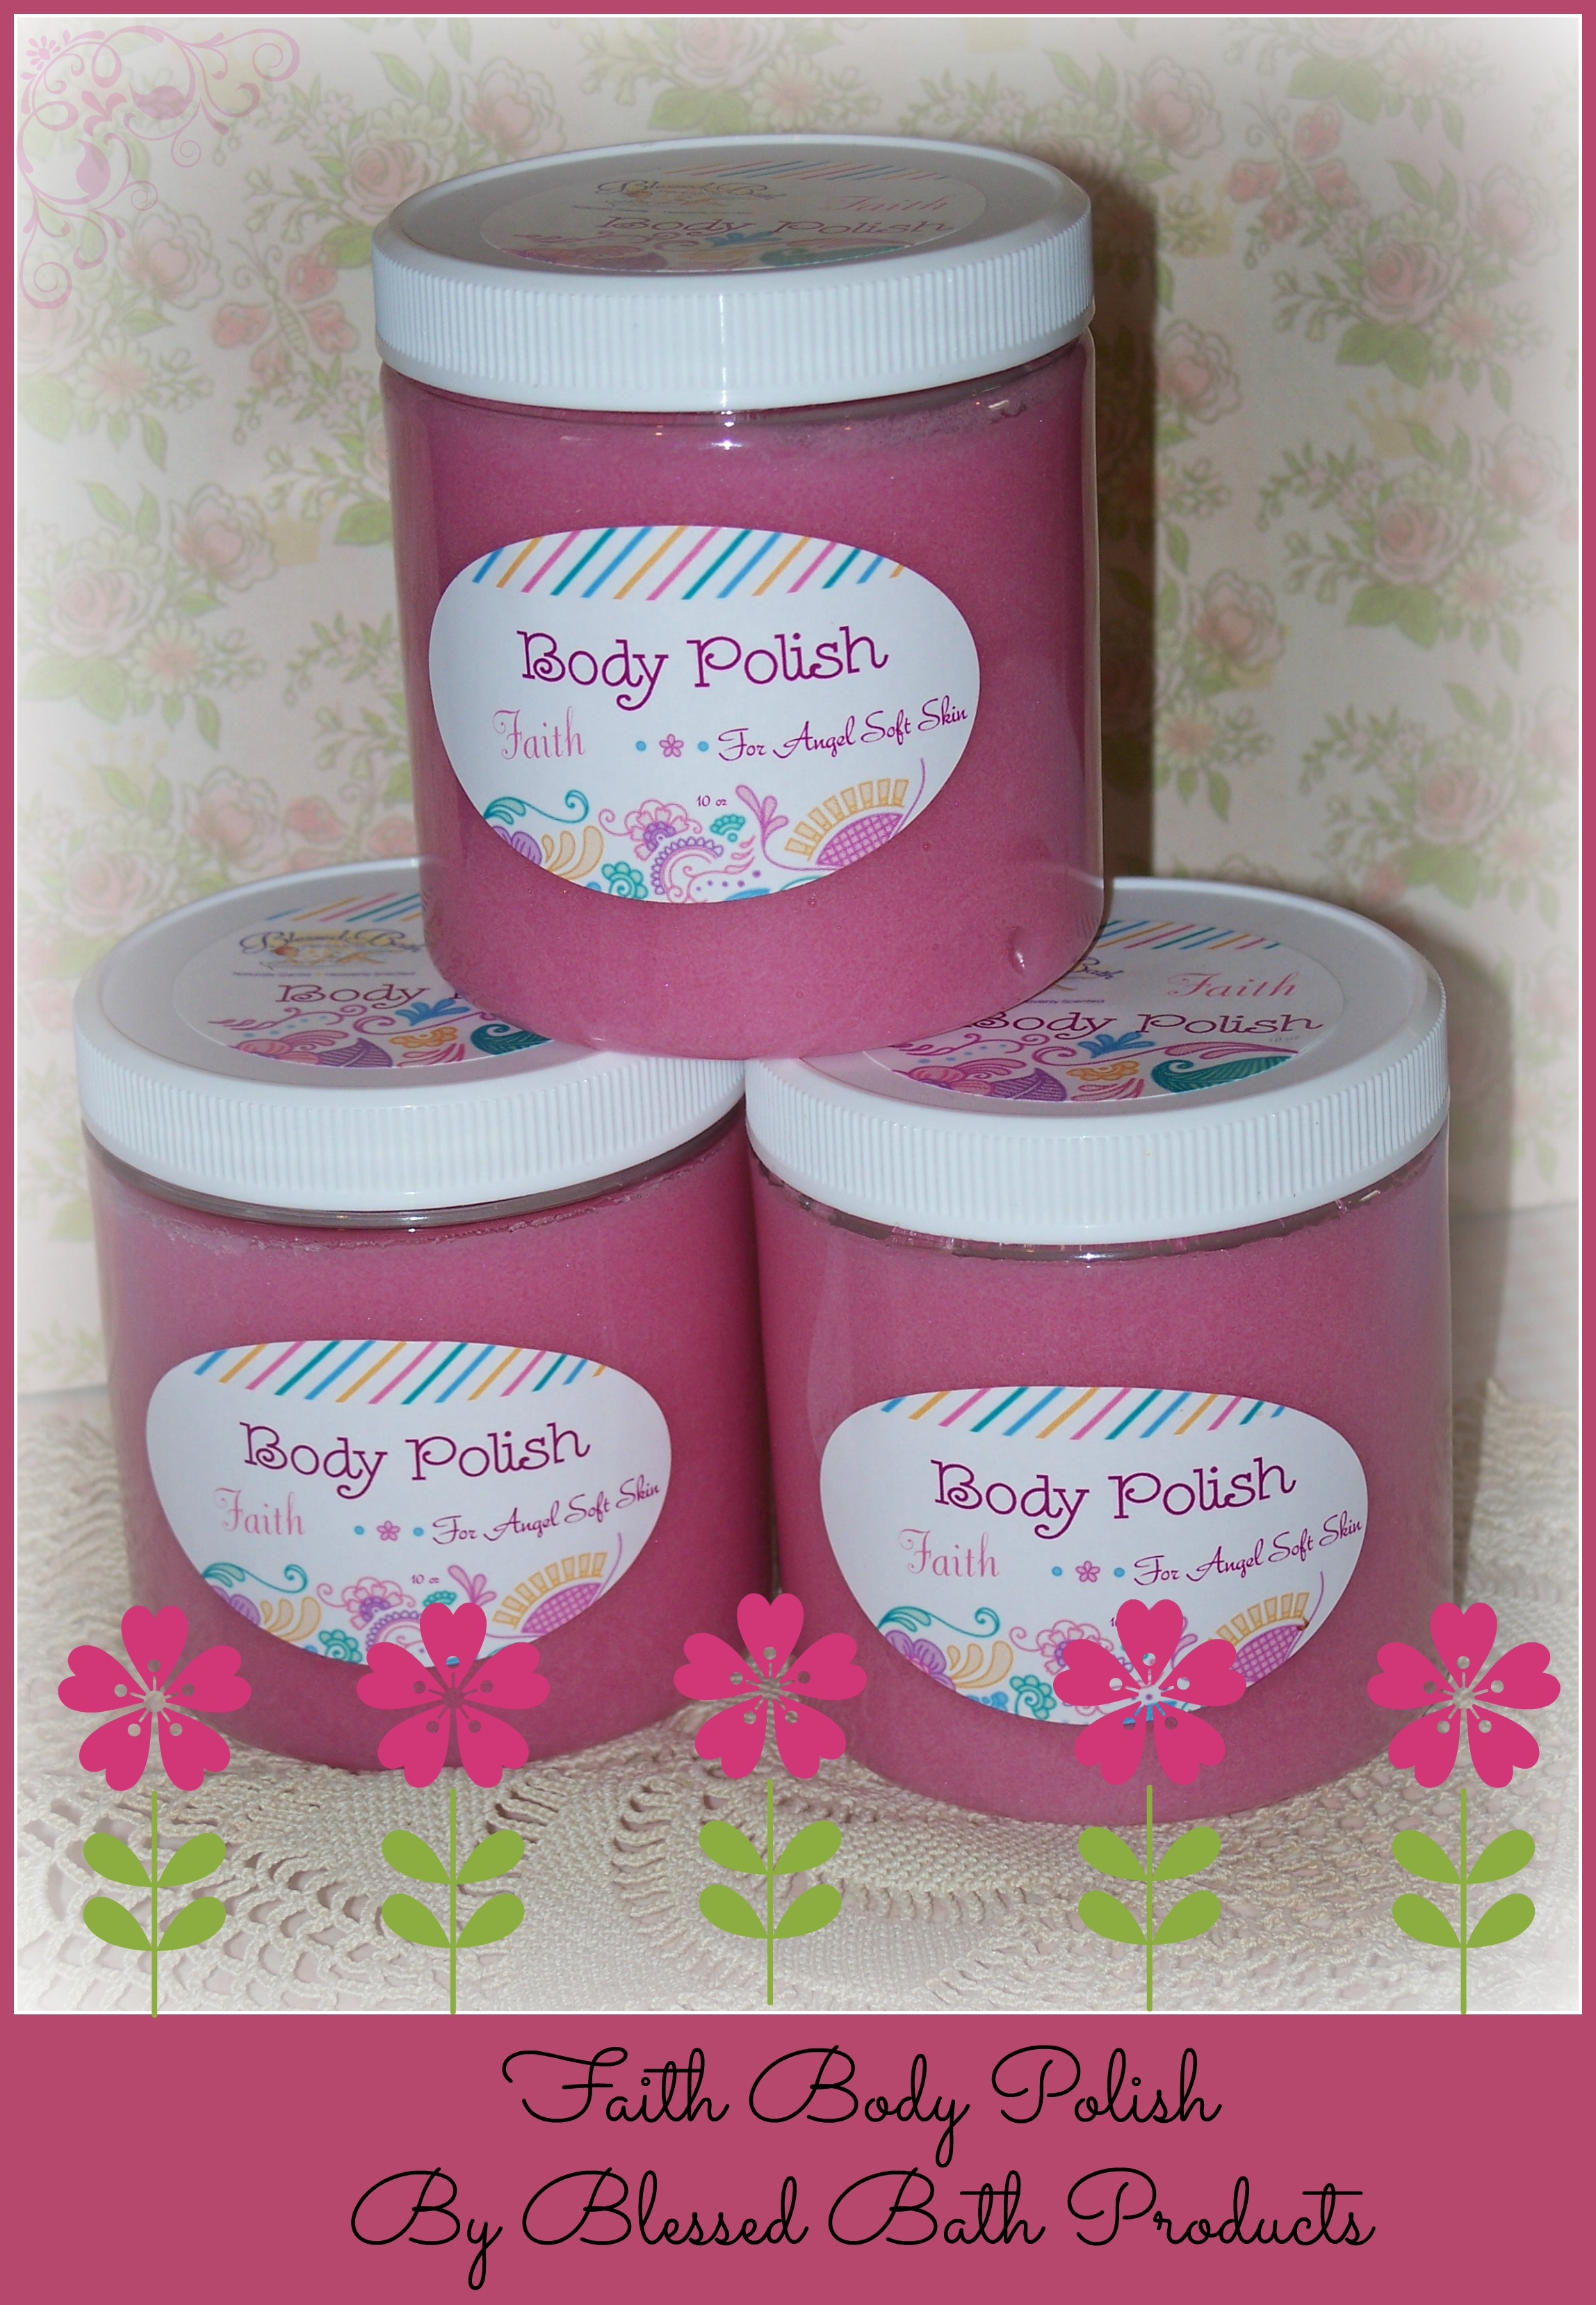 Faith Body Polish